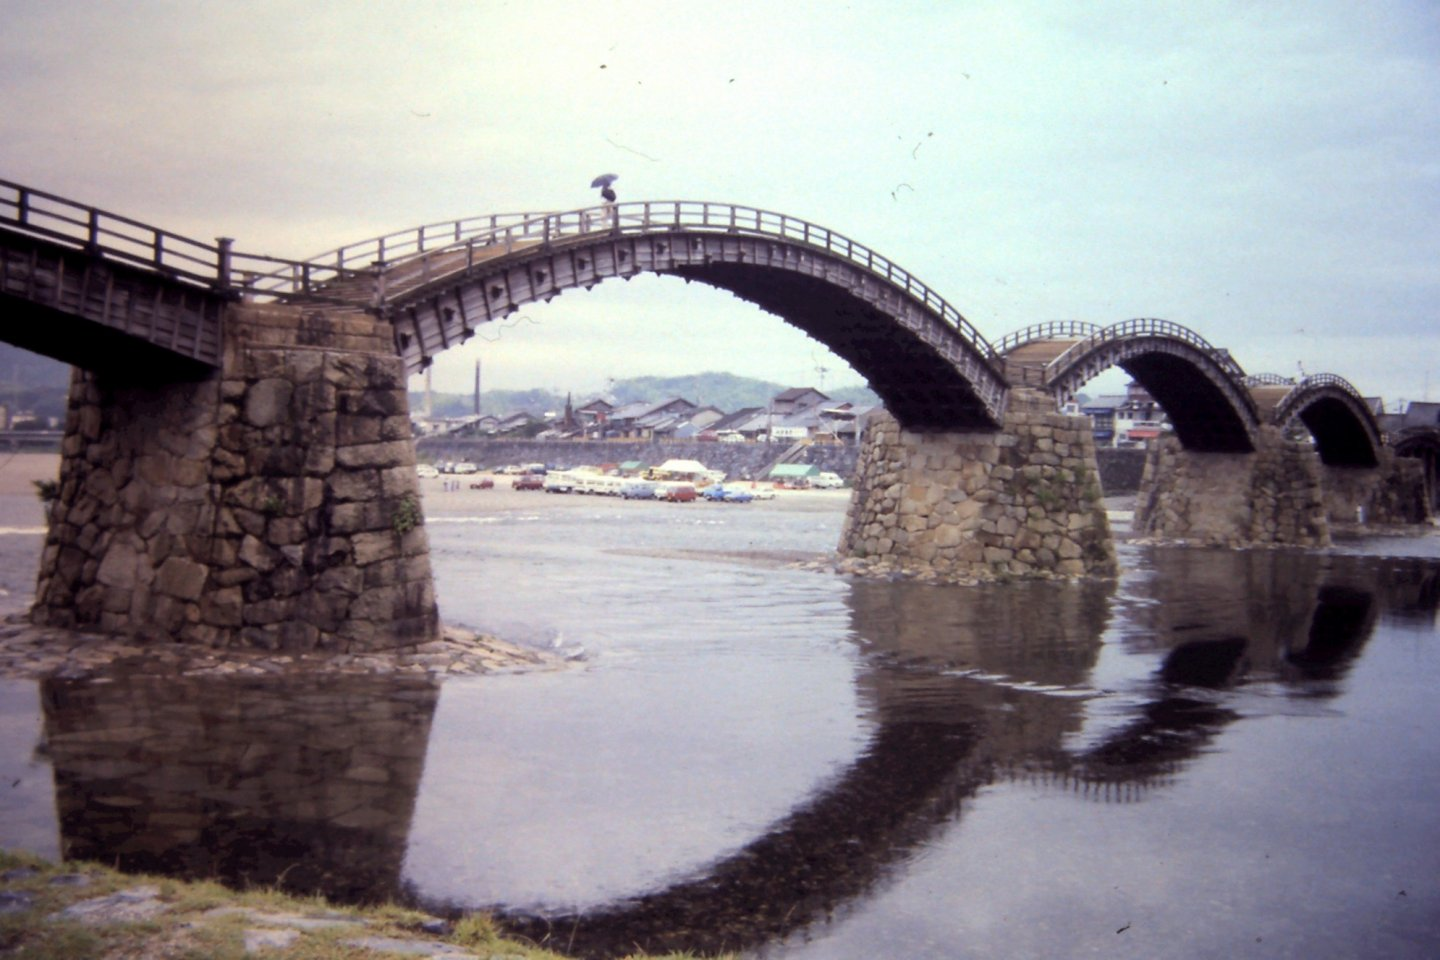 Kintai Bridge is a five-span arch bridge.